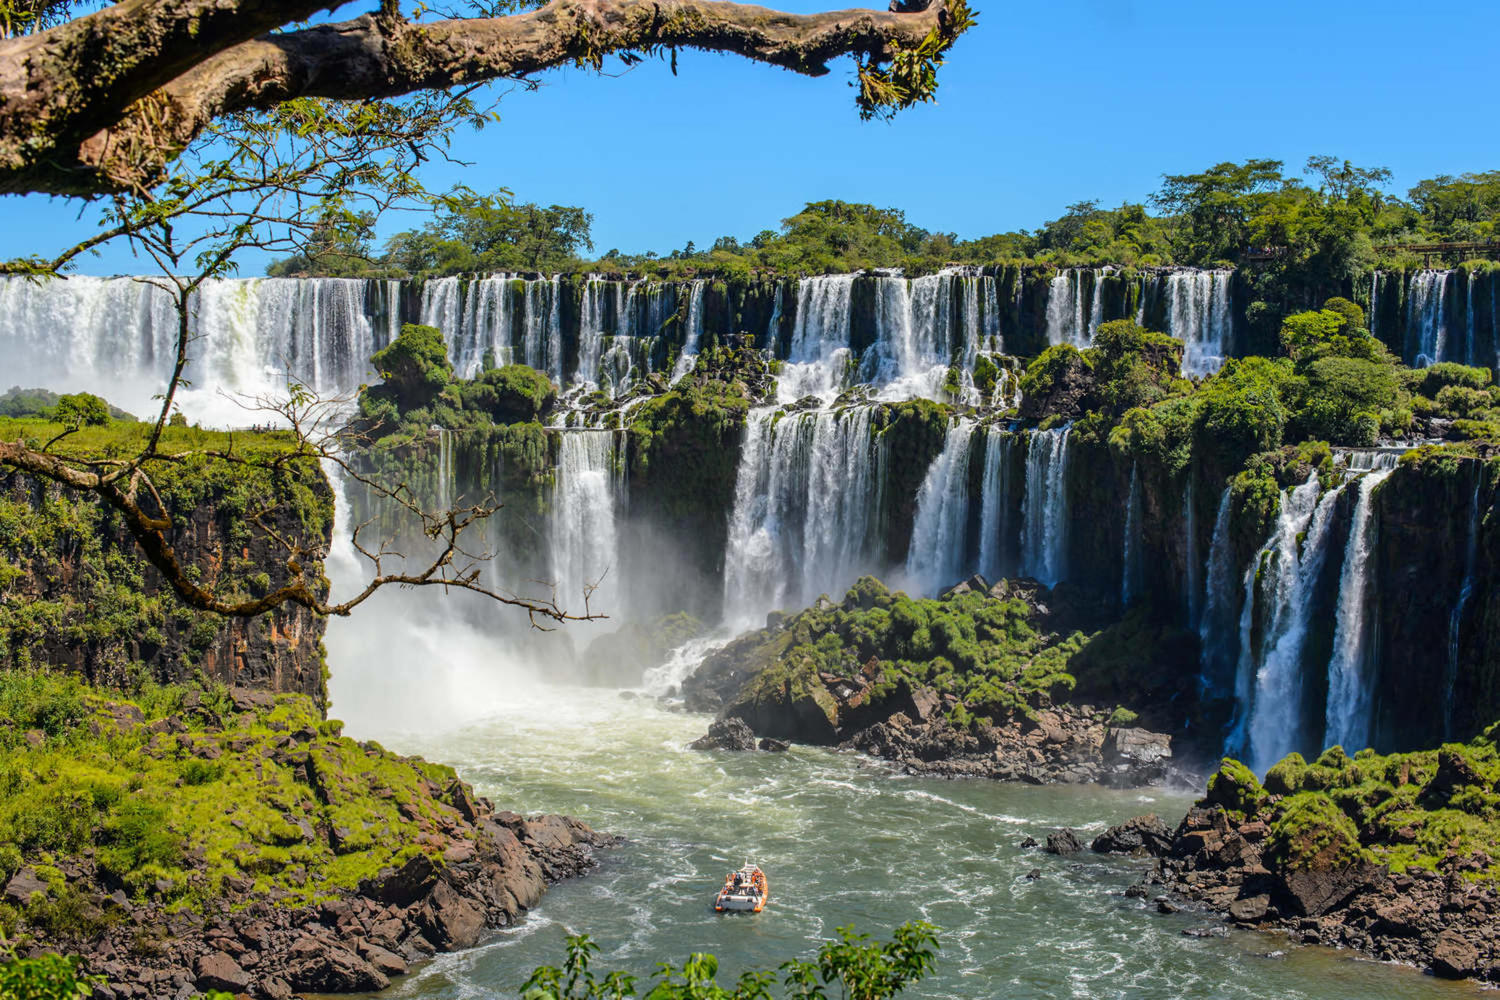 Stunning view of the Iguassu waterfalls